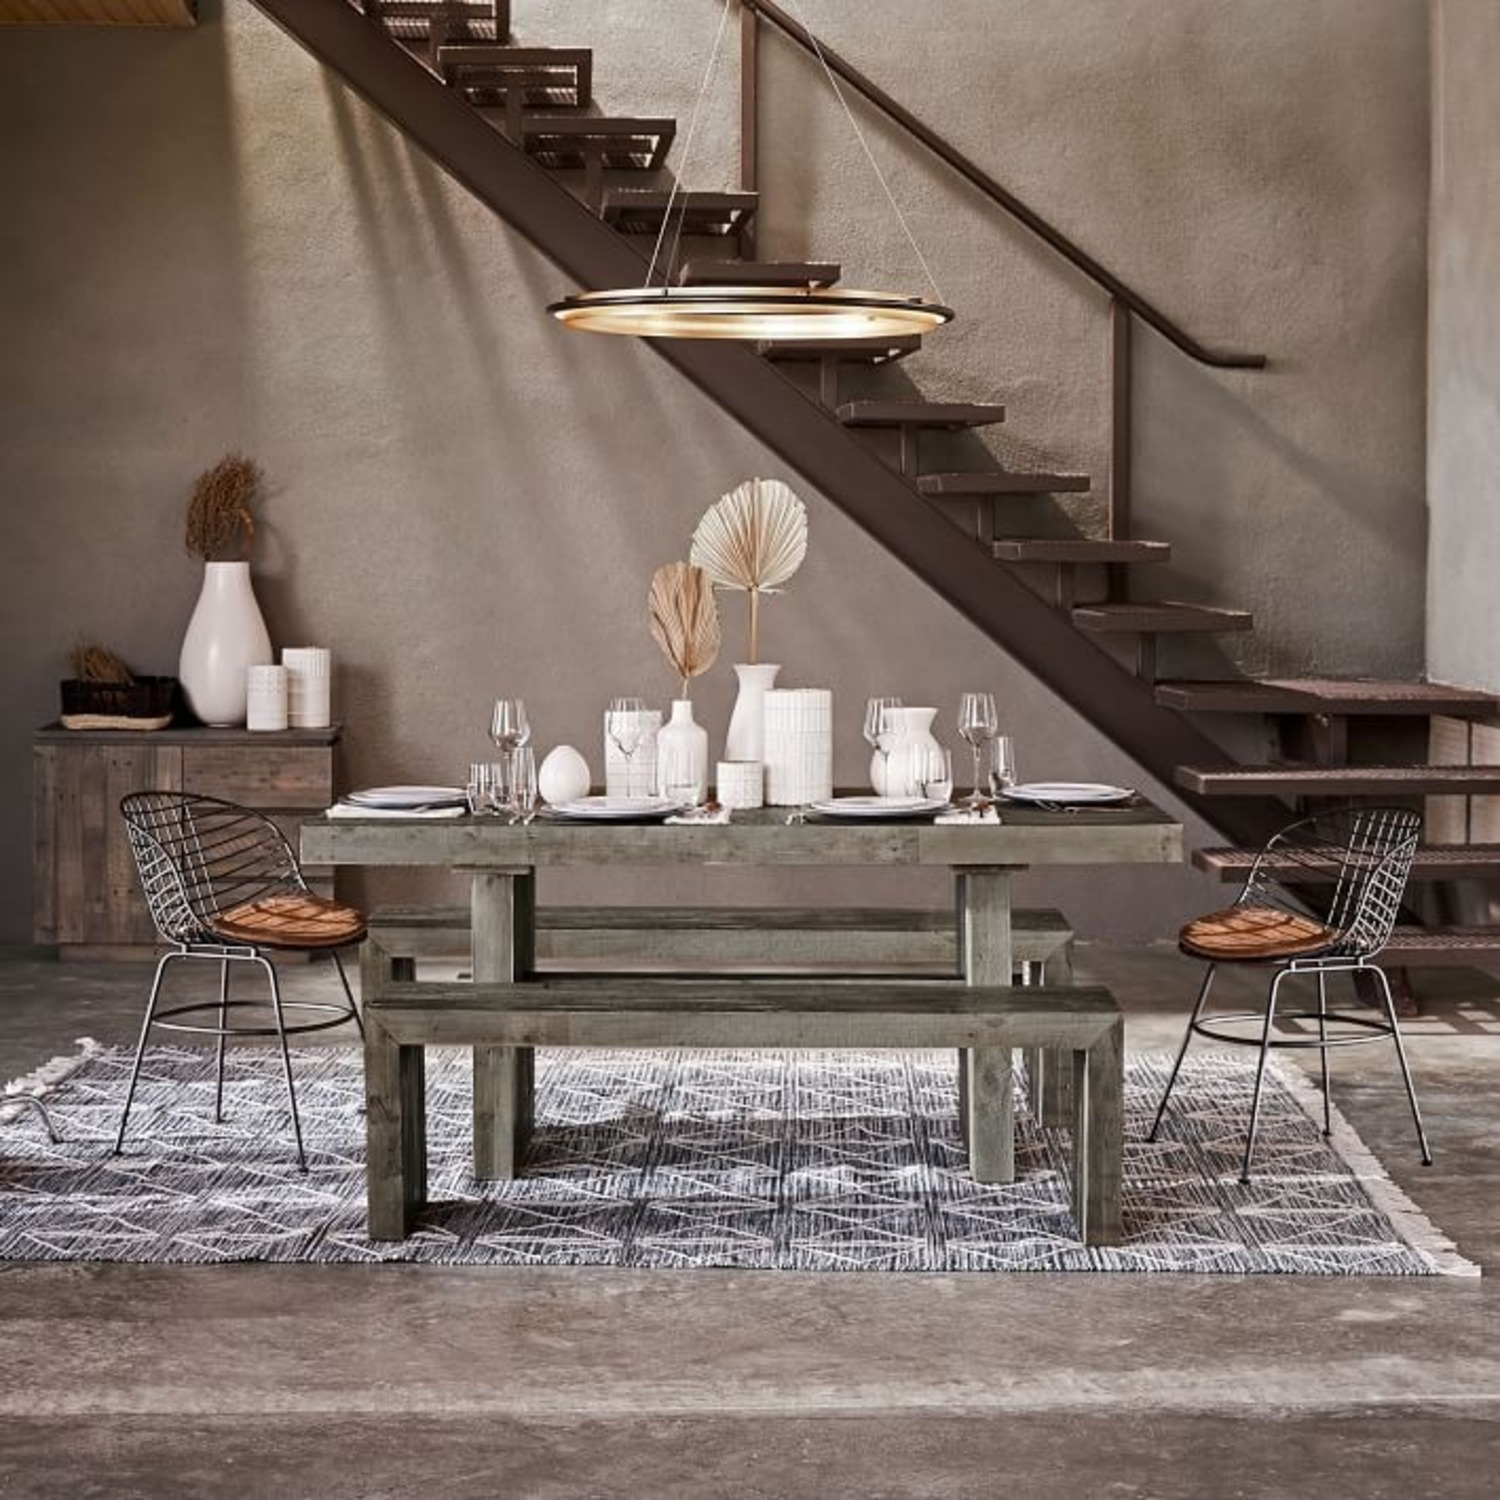 West Elm Emmerson Reclaimed Wood Dining Bench